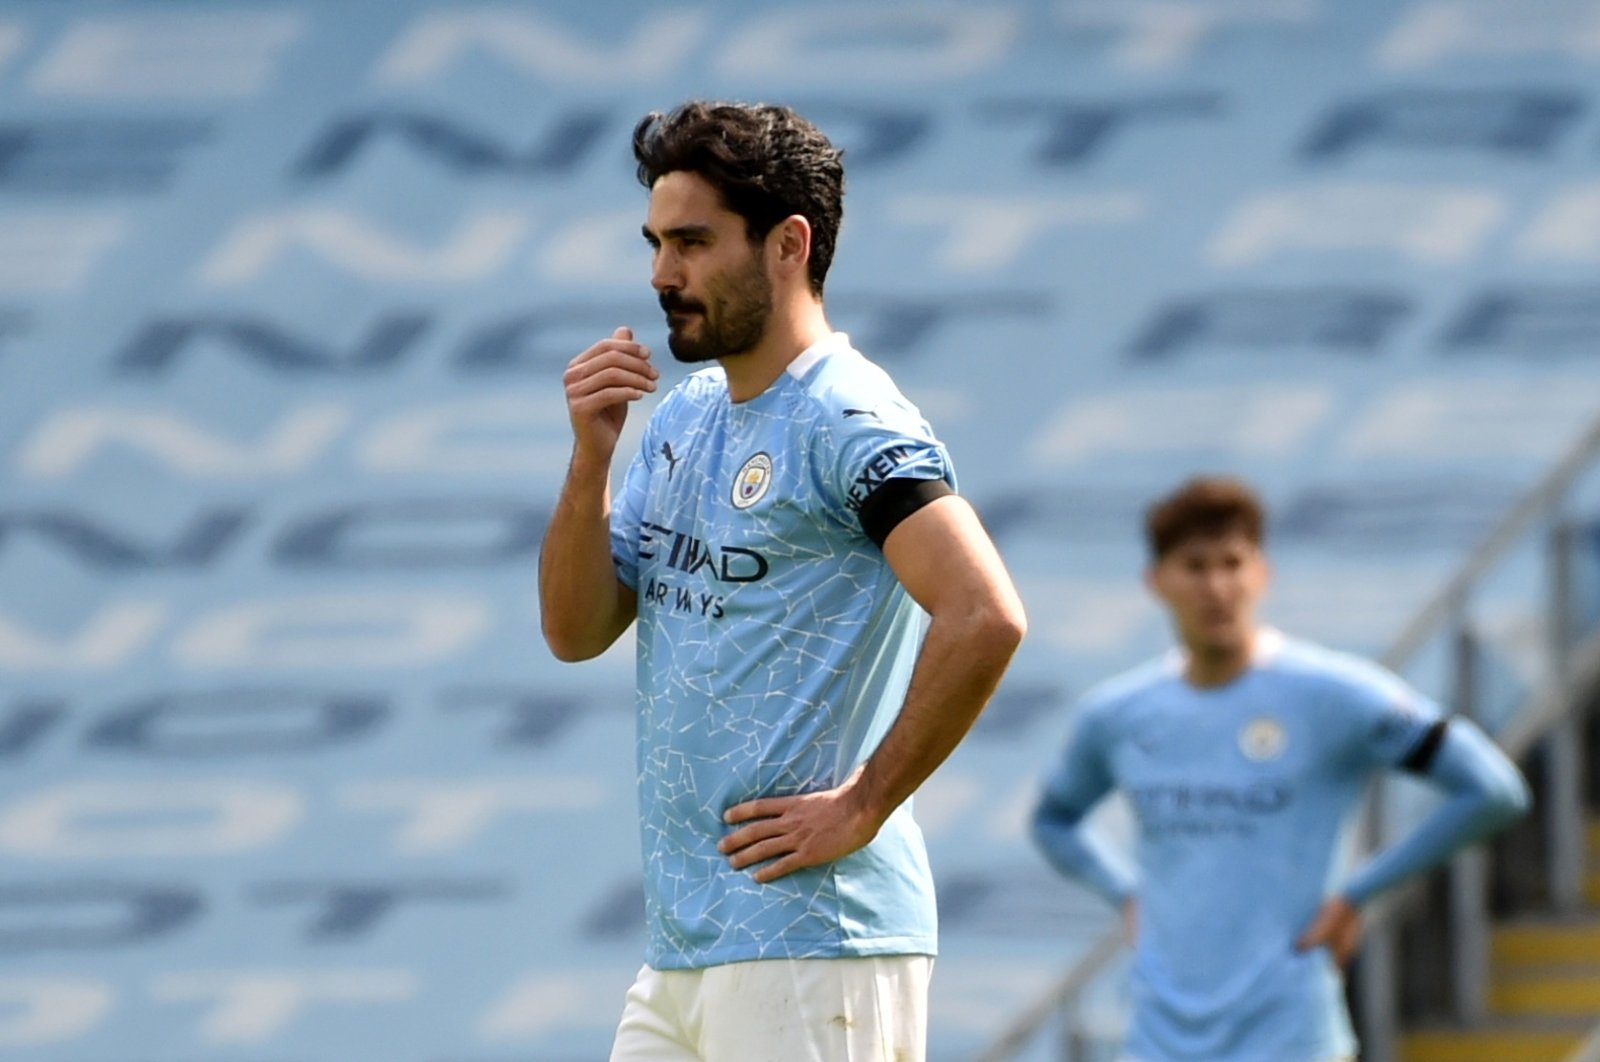 Manchester City's İlkay Gündoğan reacts during a Premier League match against Leeds United, Etihad Stadium, Manchester, Britain, April 10, 2021.